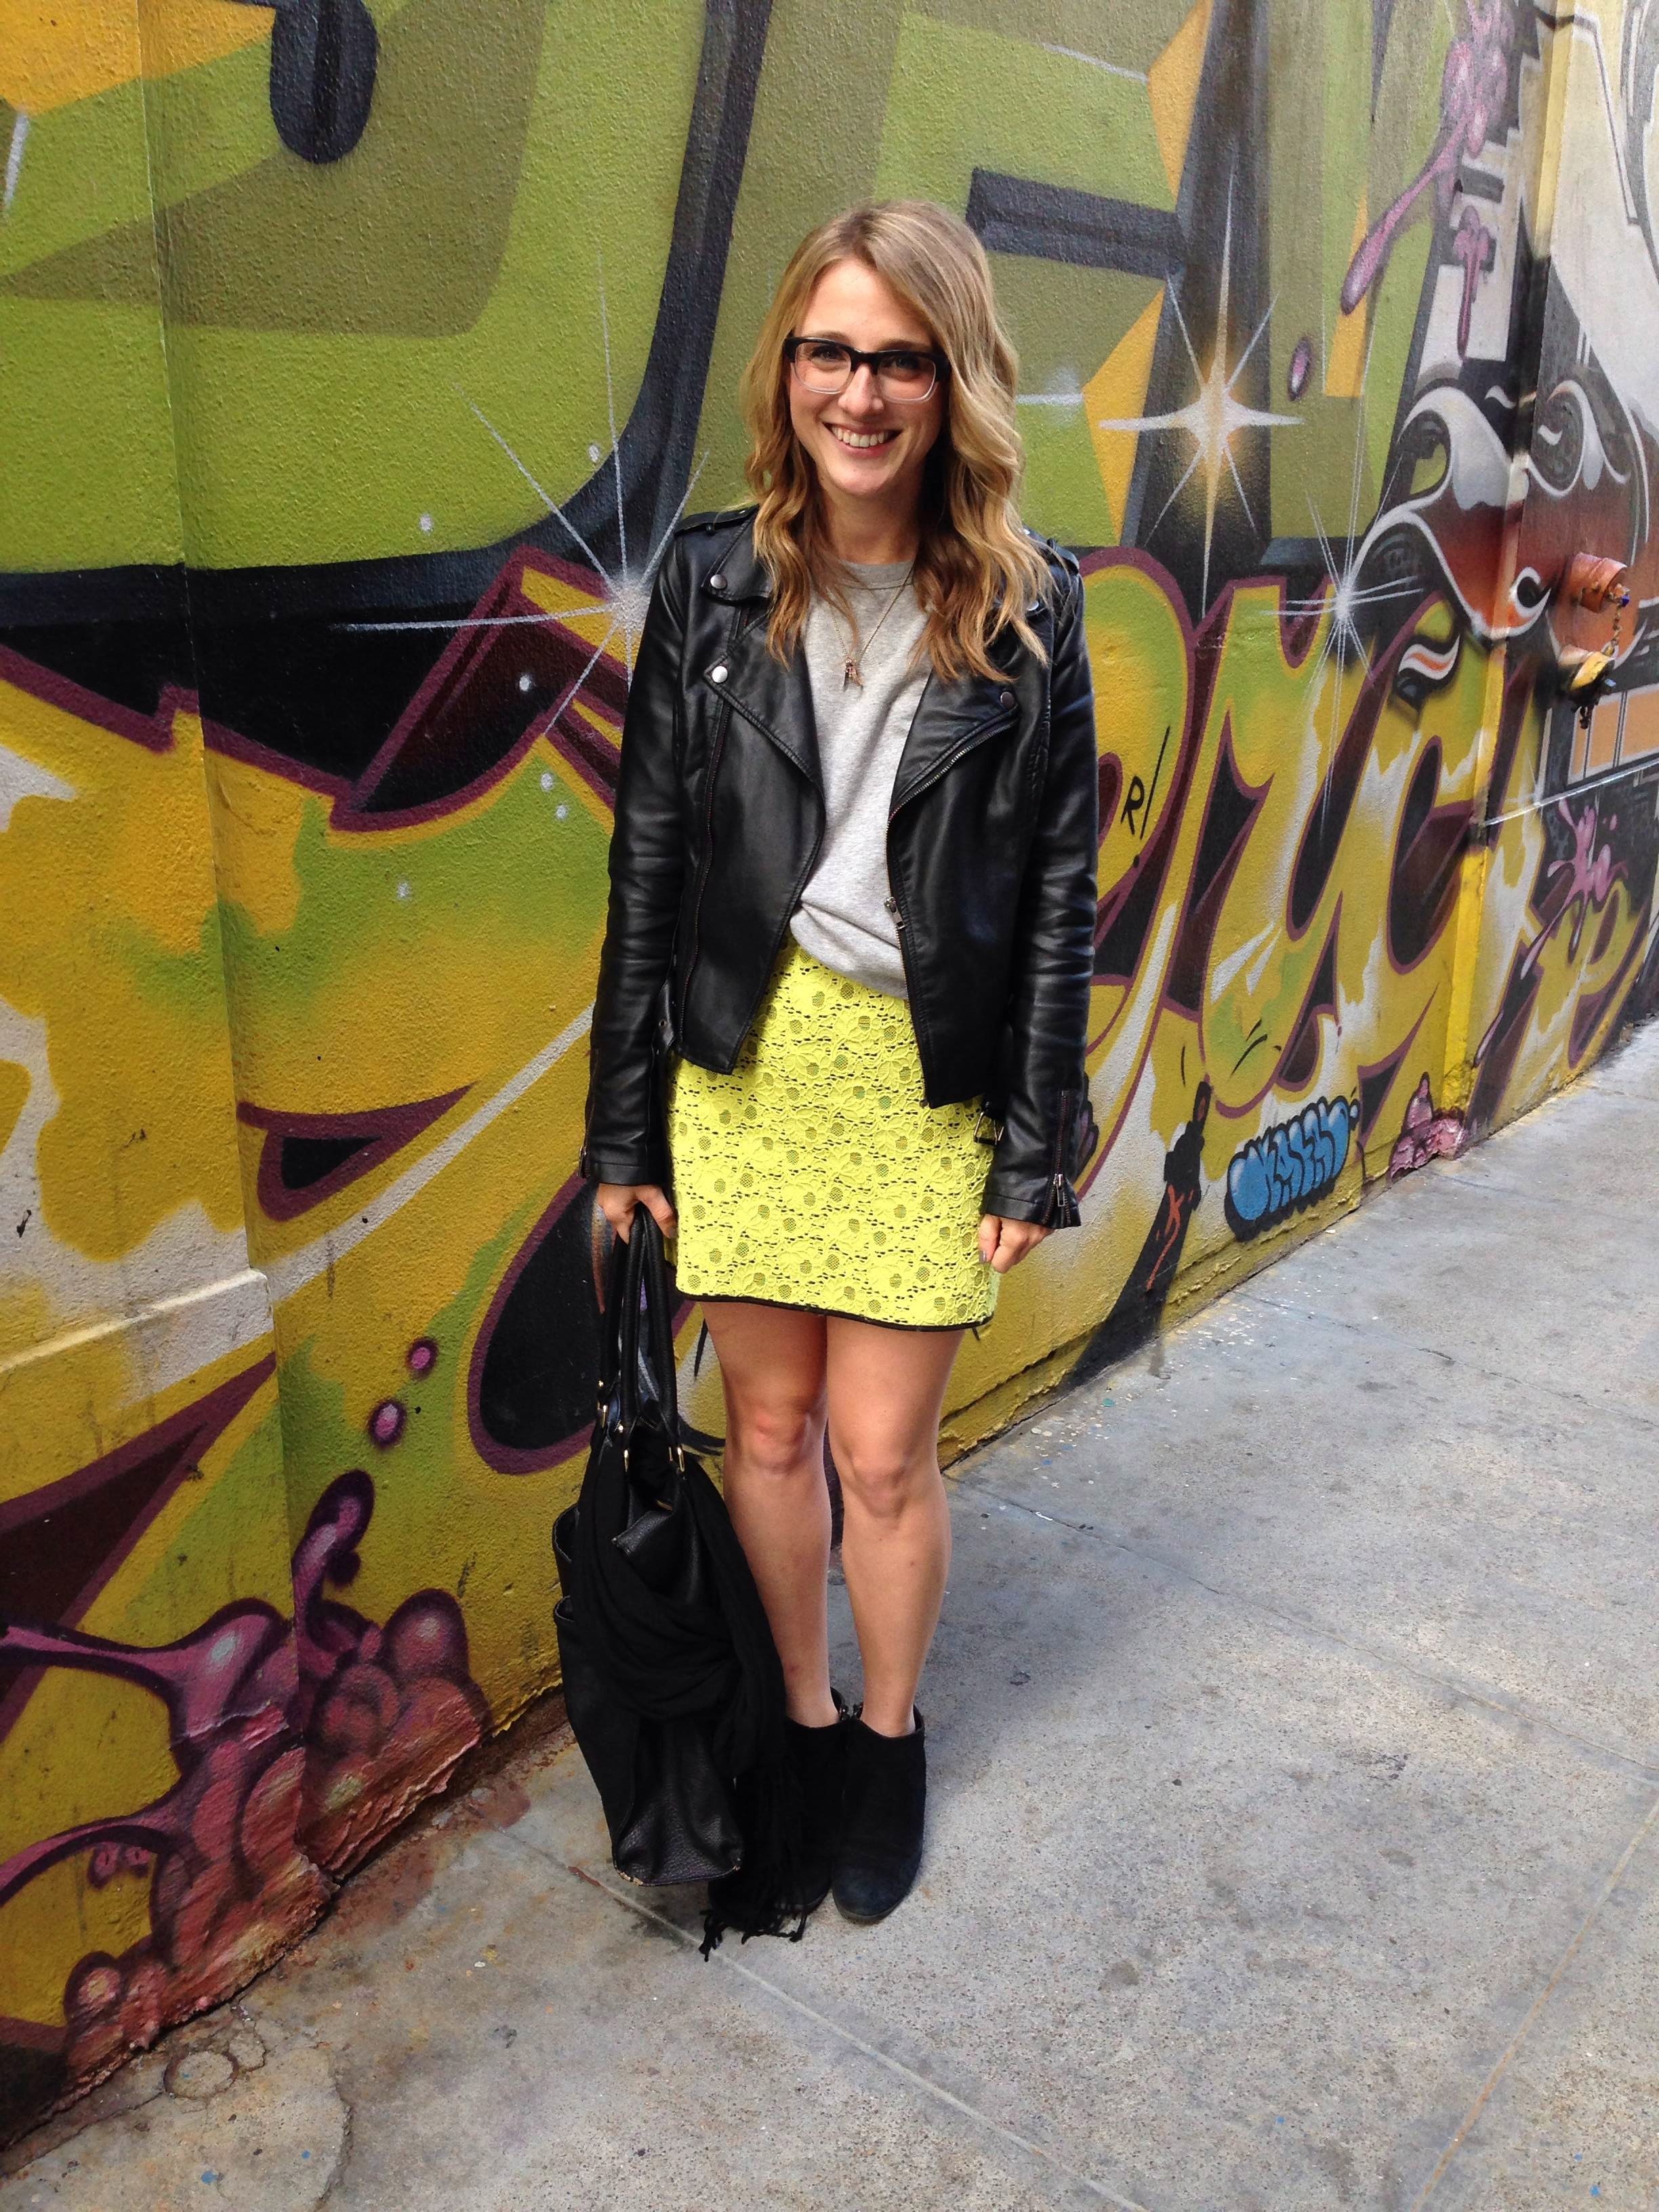 Jacket: Bar III | Sweatshirt: H&M | Skirt: UO via Andi | Shoes: via Andi